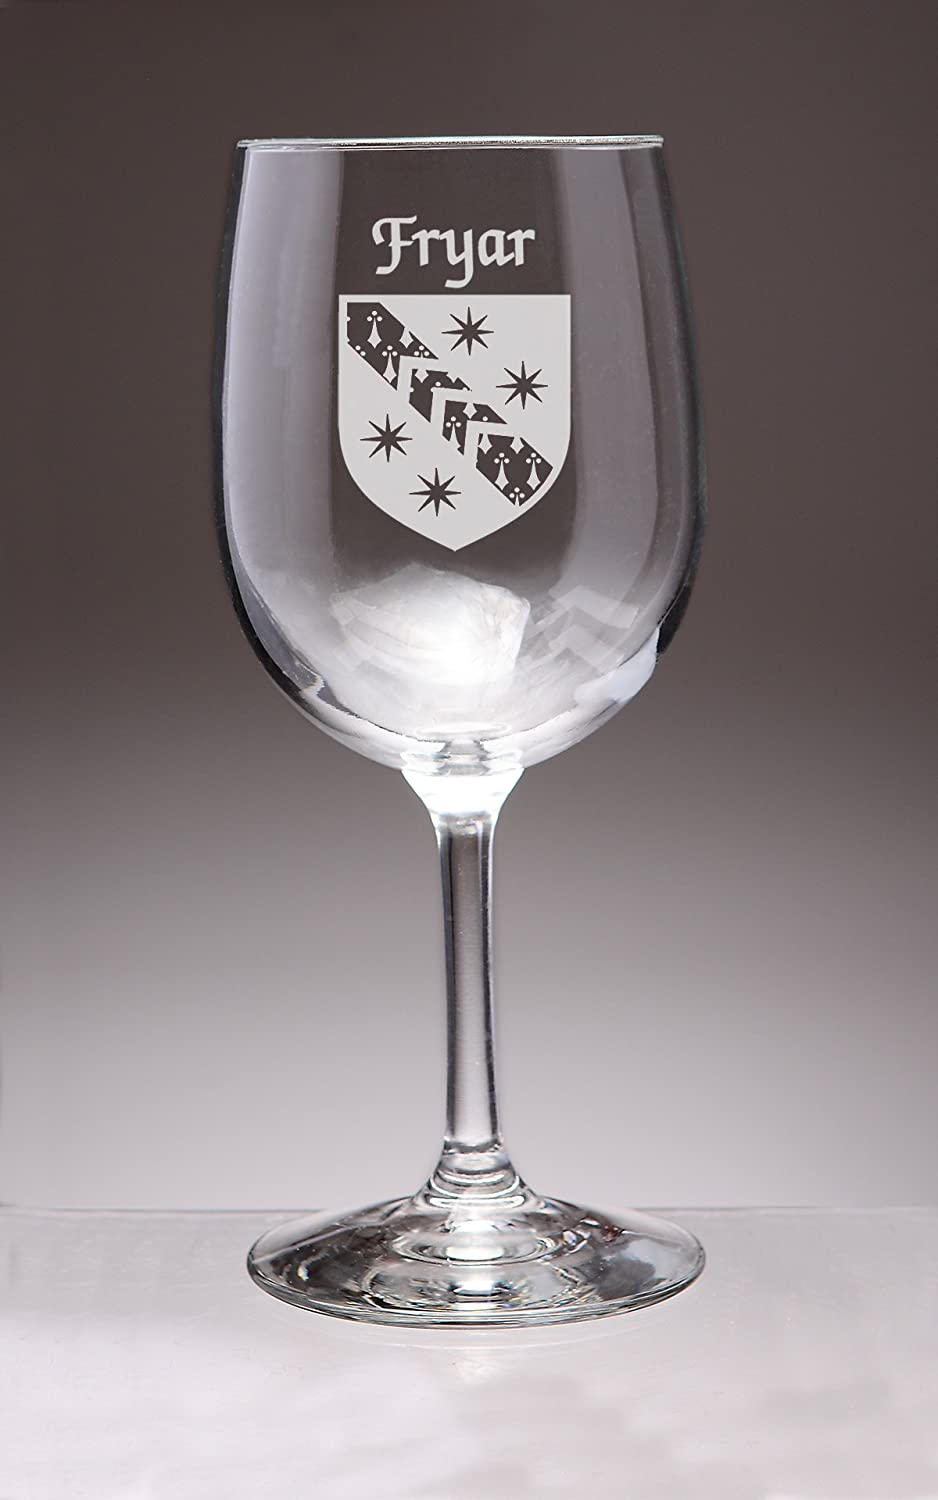 Fryar Challenge the lowest price Irish Coat Animer and price revision of Arms Wine - Etched Glasses Sand 4 Set